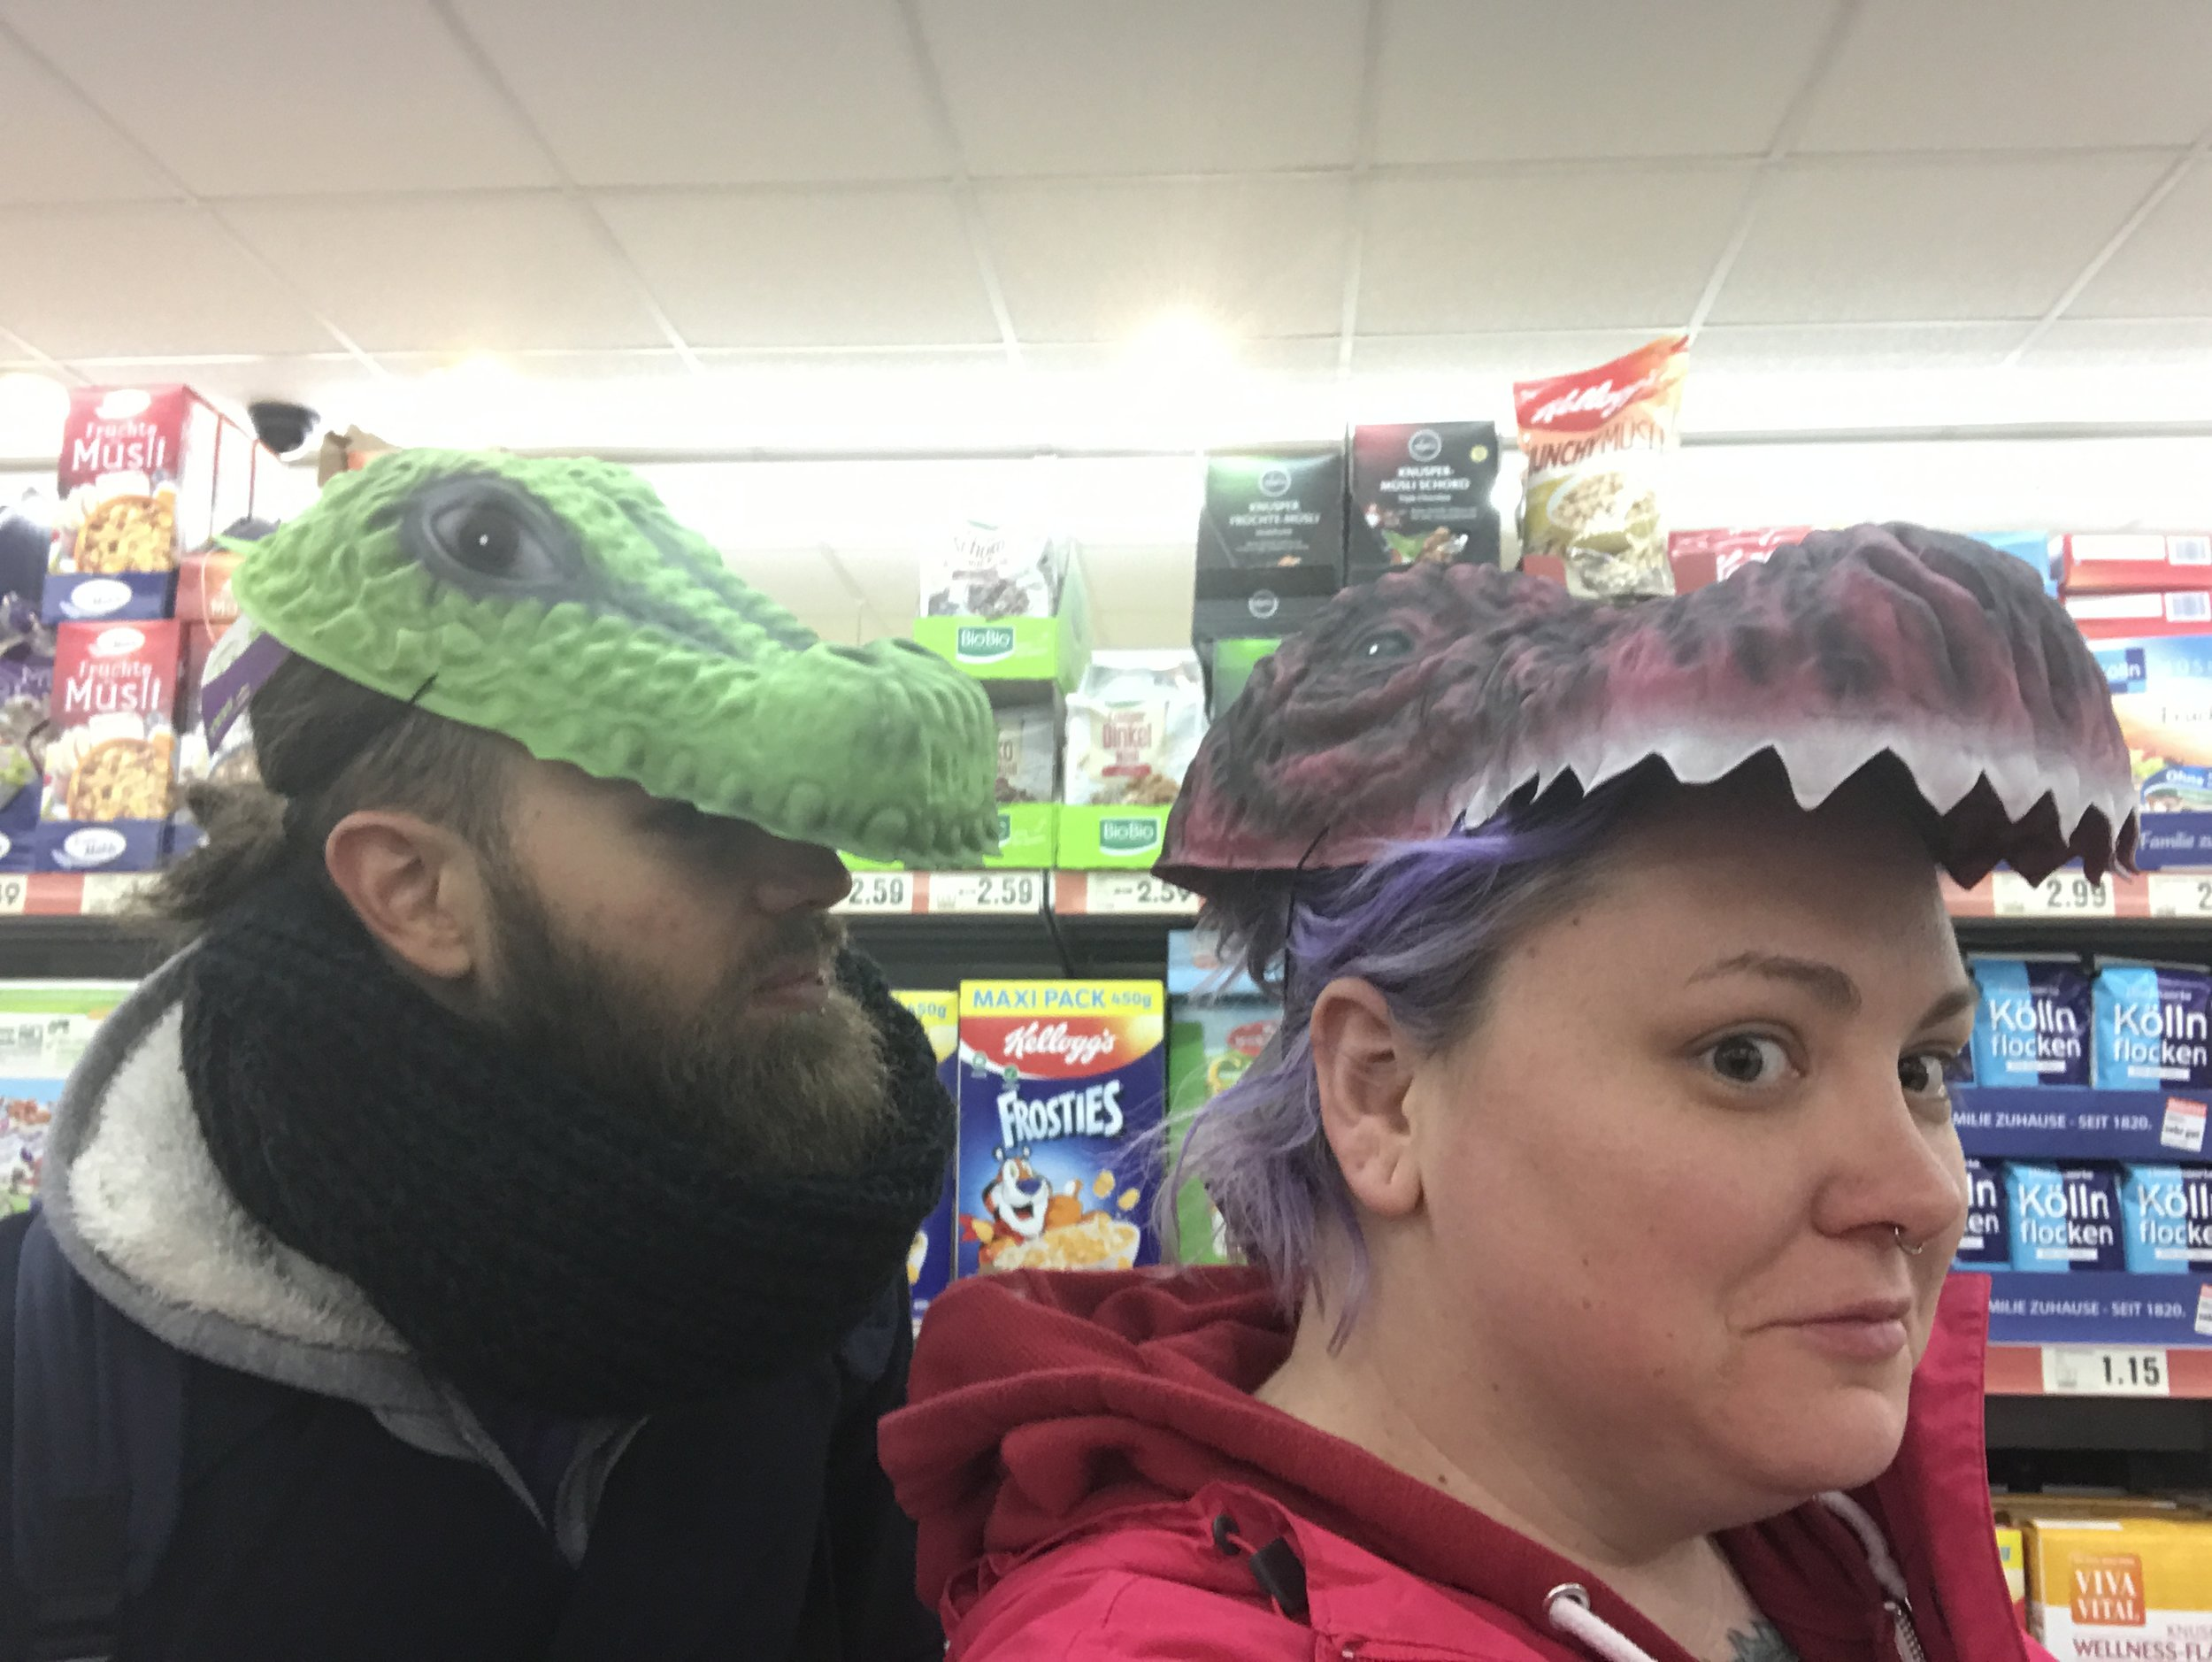 5 or 6 people saw us like this and gave us weird looks.